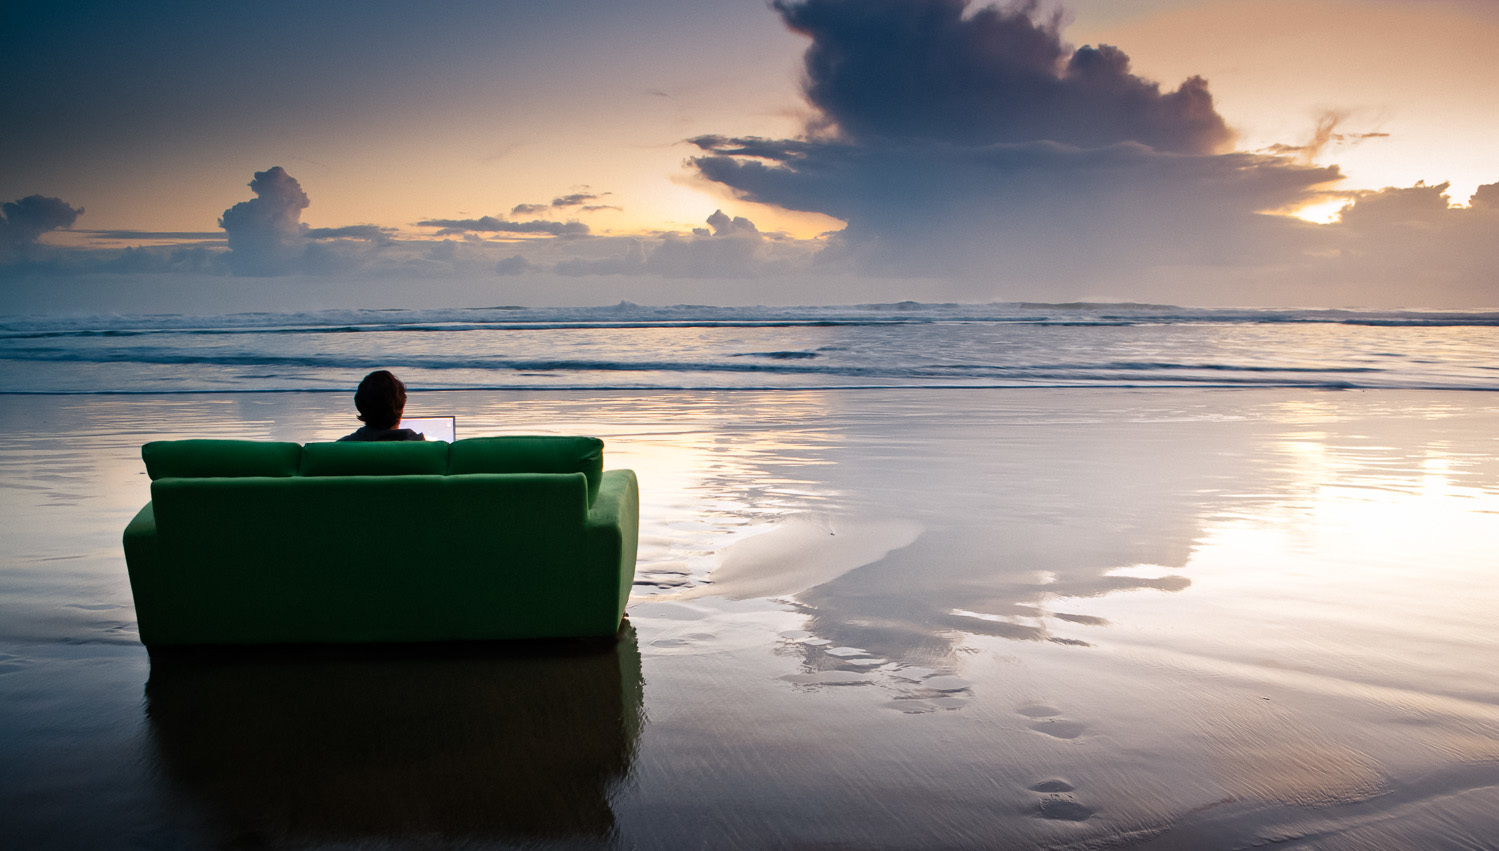 Enviroment portrait - Couch at beach